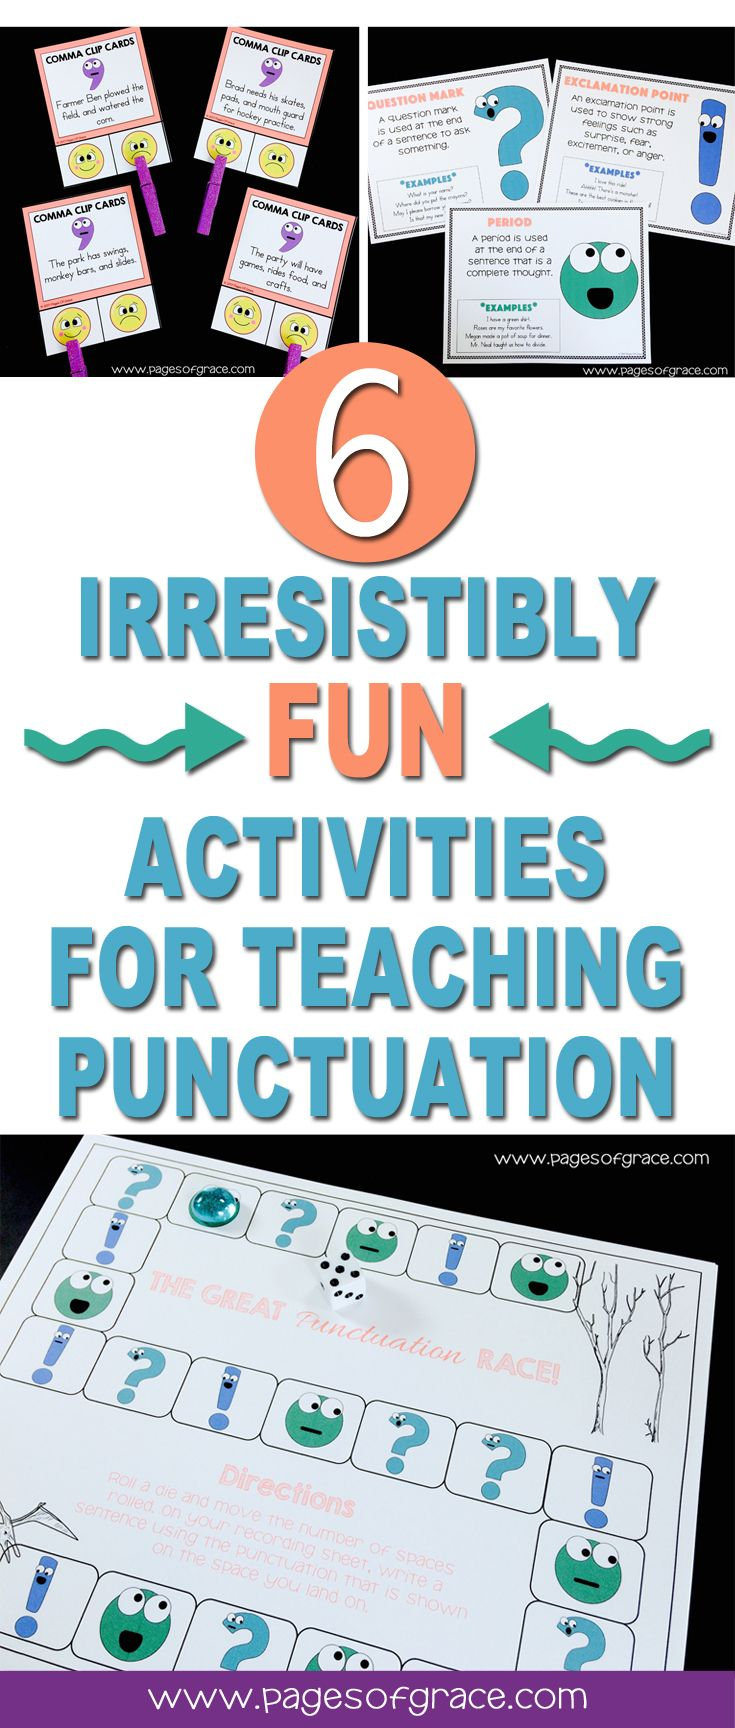 Best 25 teaching punctuation ideas on pinterest punctuation posters children in need song and definition of teaching